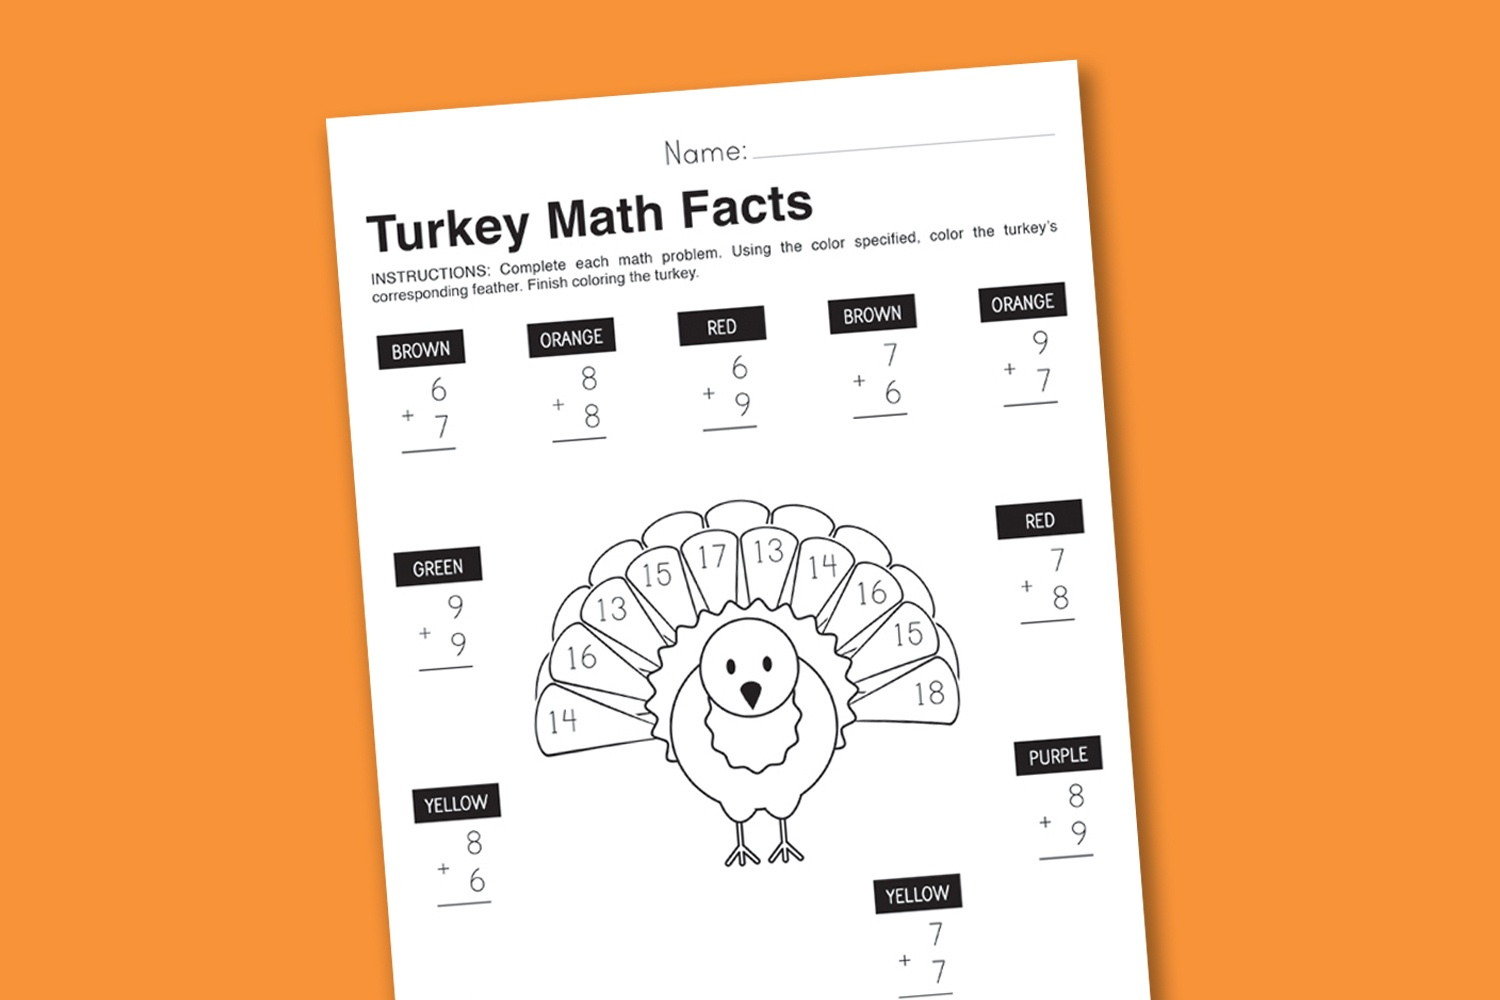 Worksheet Wednesday Turkey Math Facts